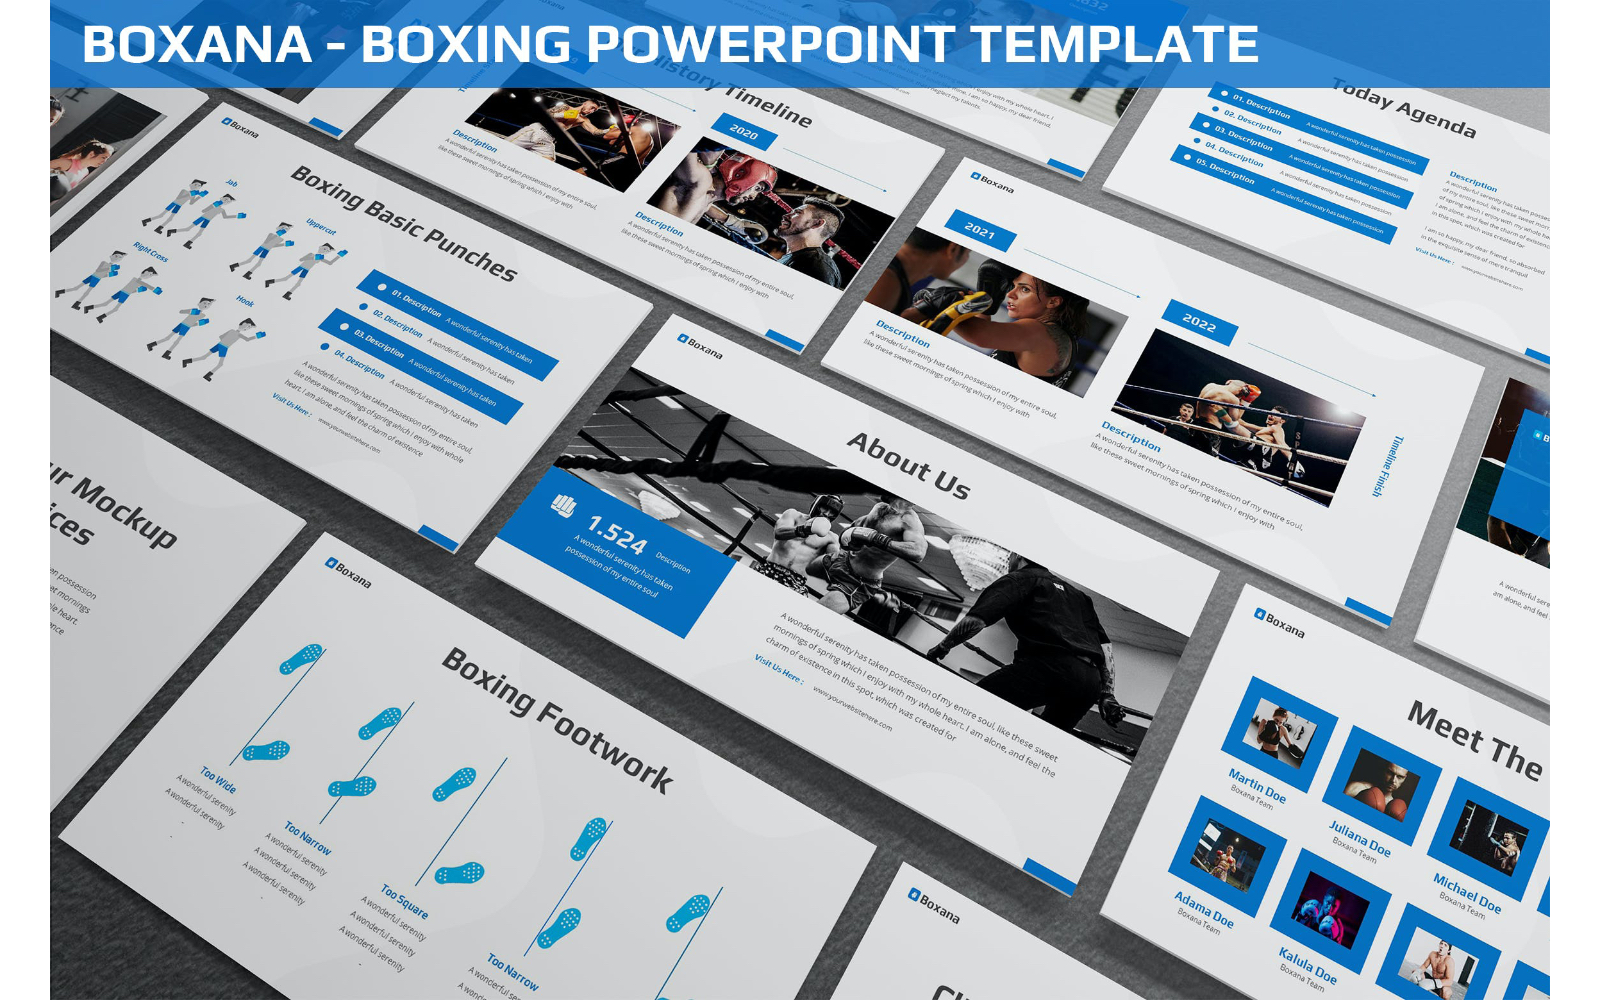 Boxana - Boxing Powerpoint Template